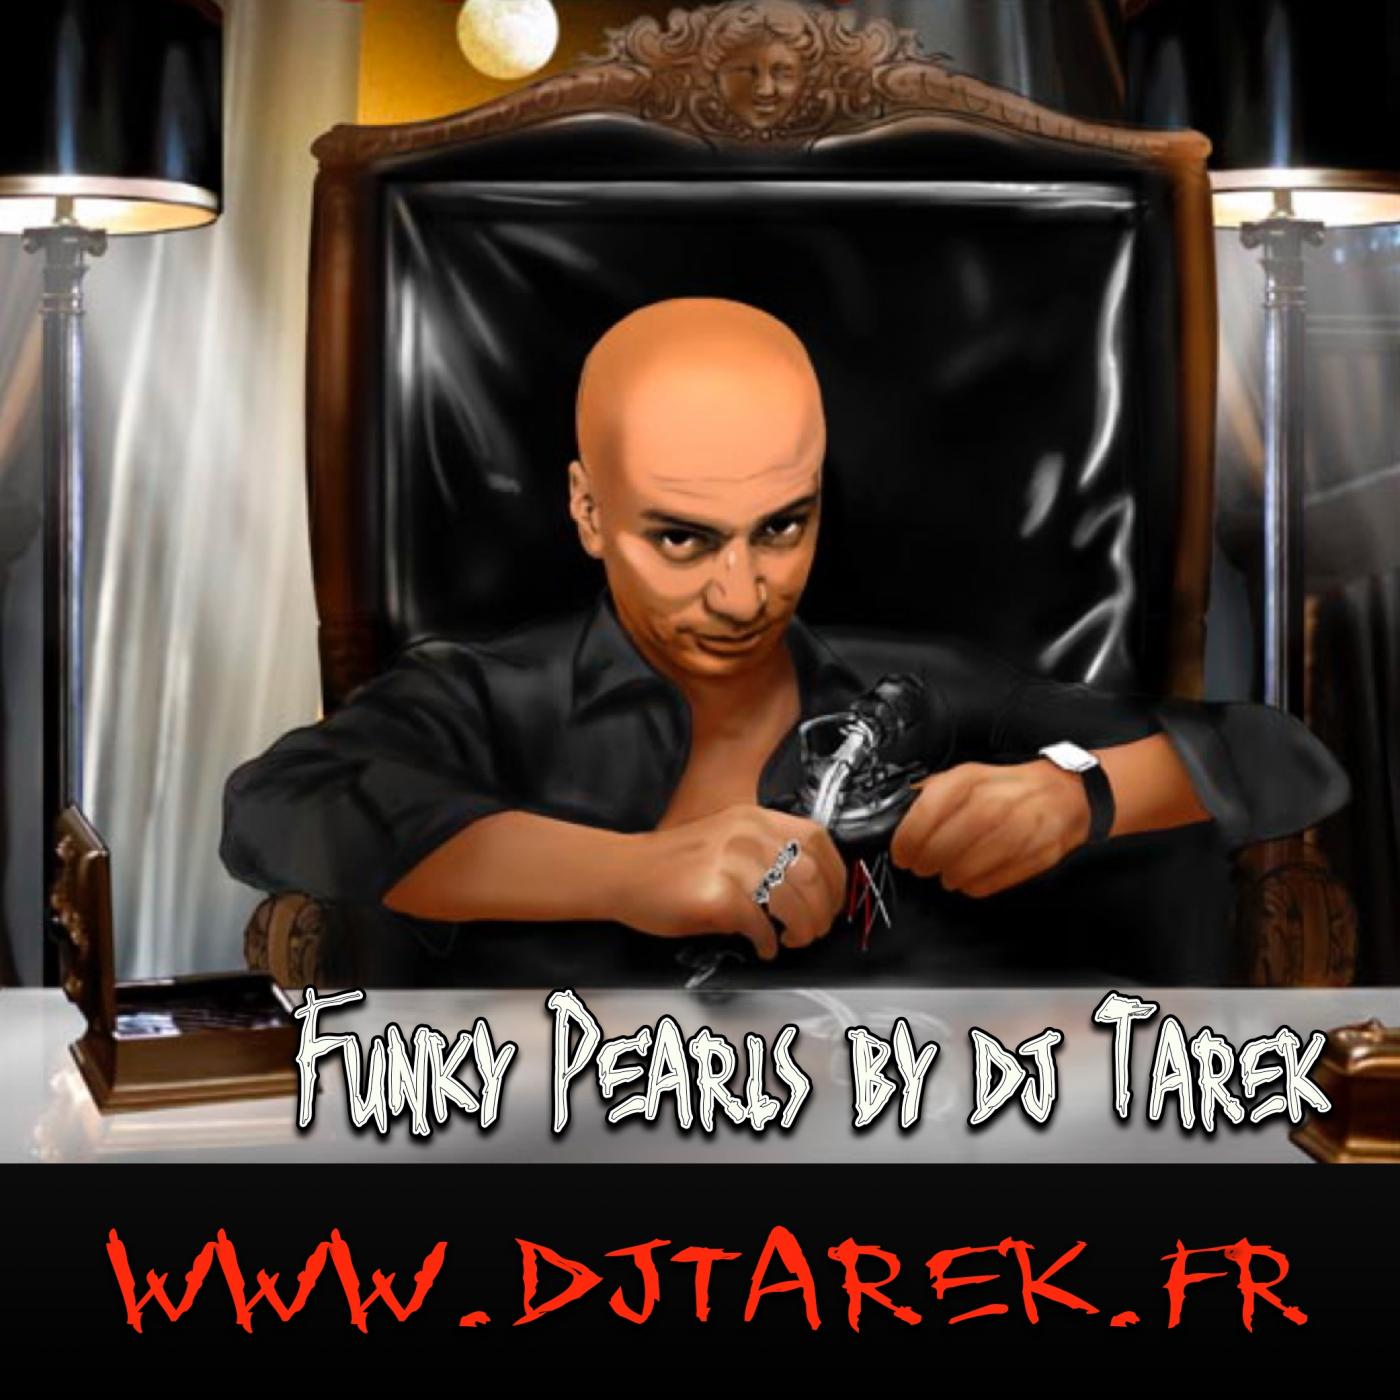 FUNKY PEARLS BY DJ TAREK FROM PARIS